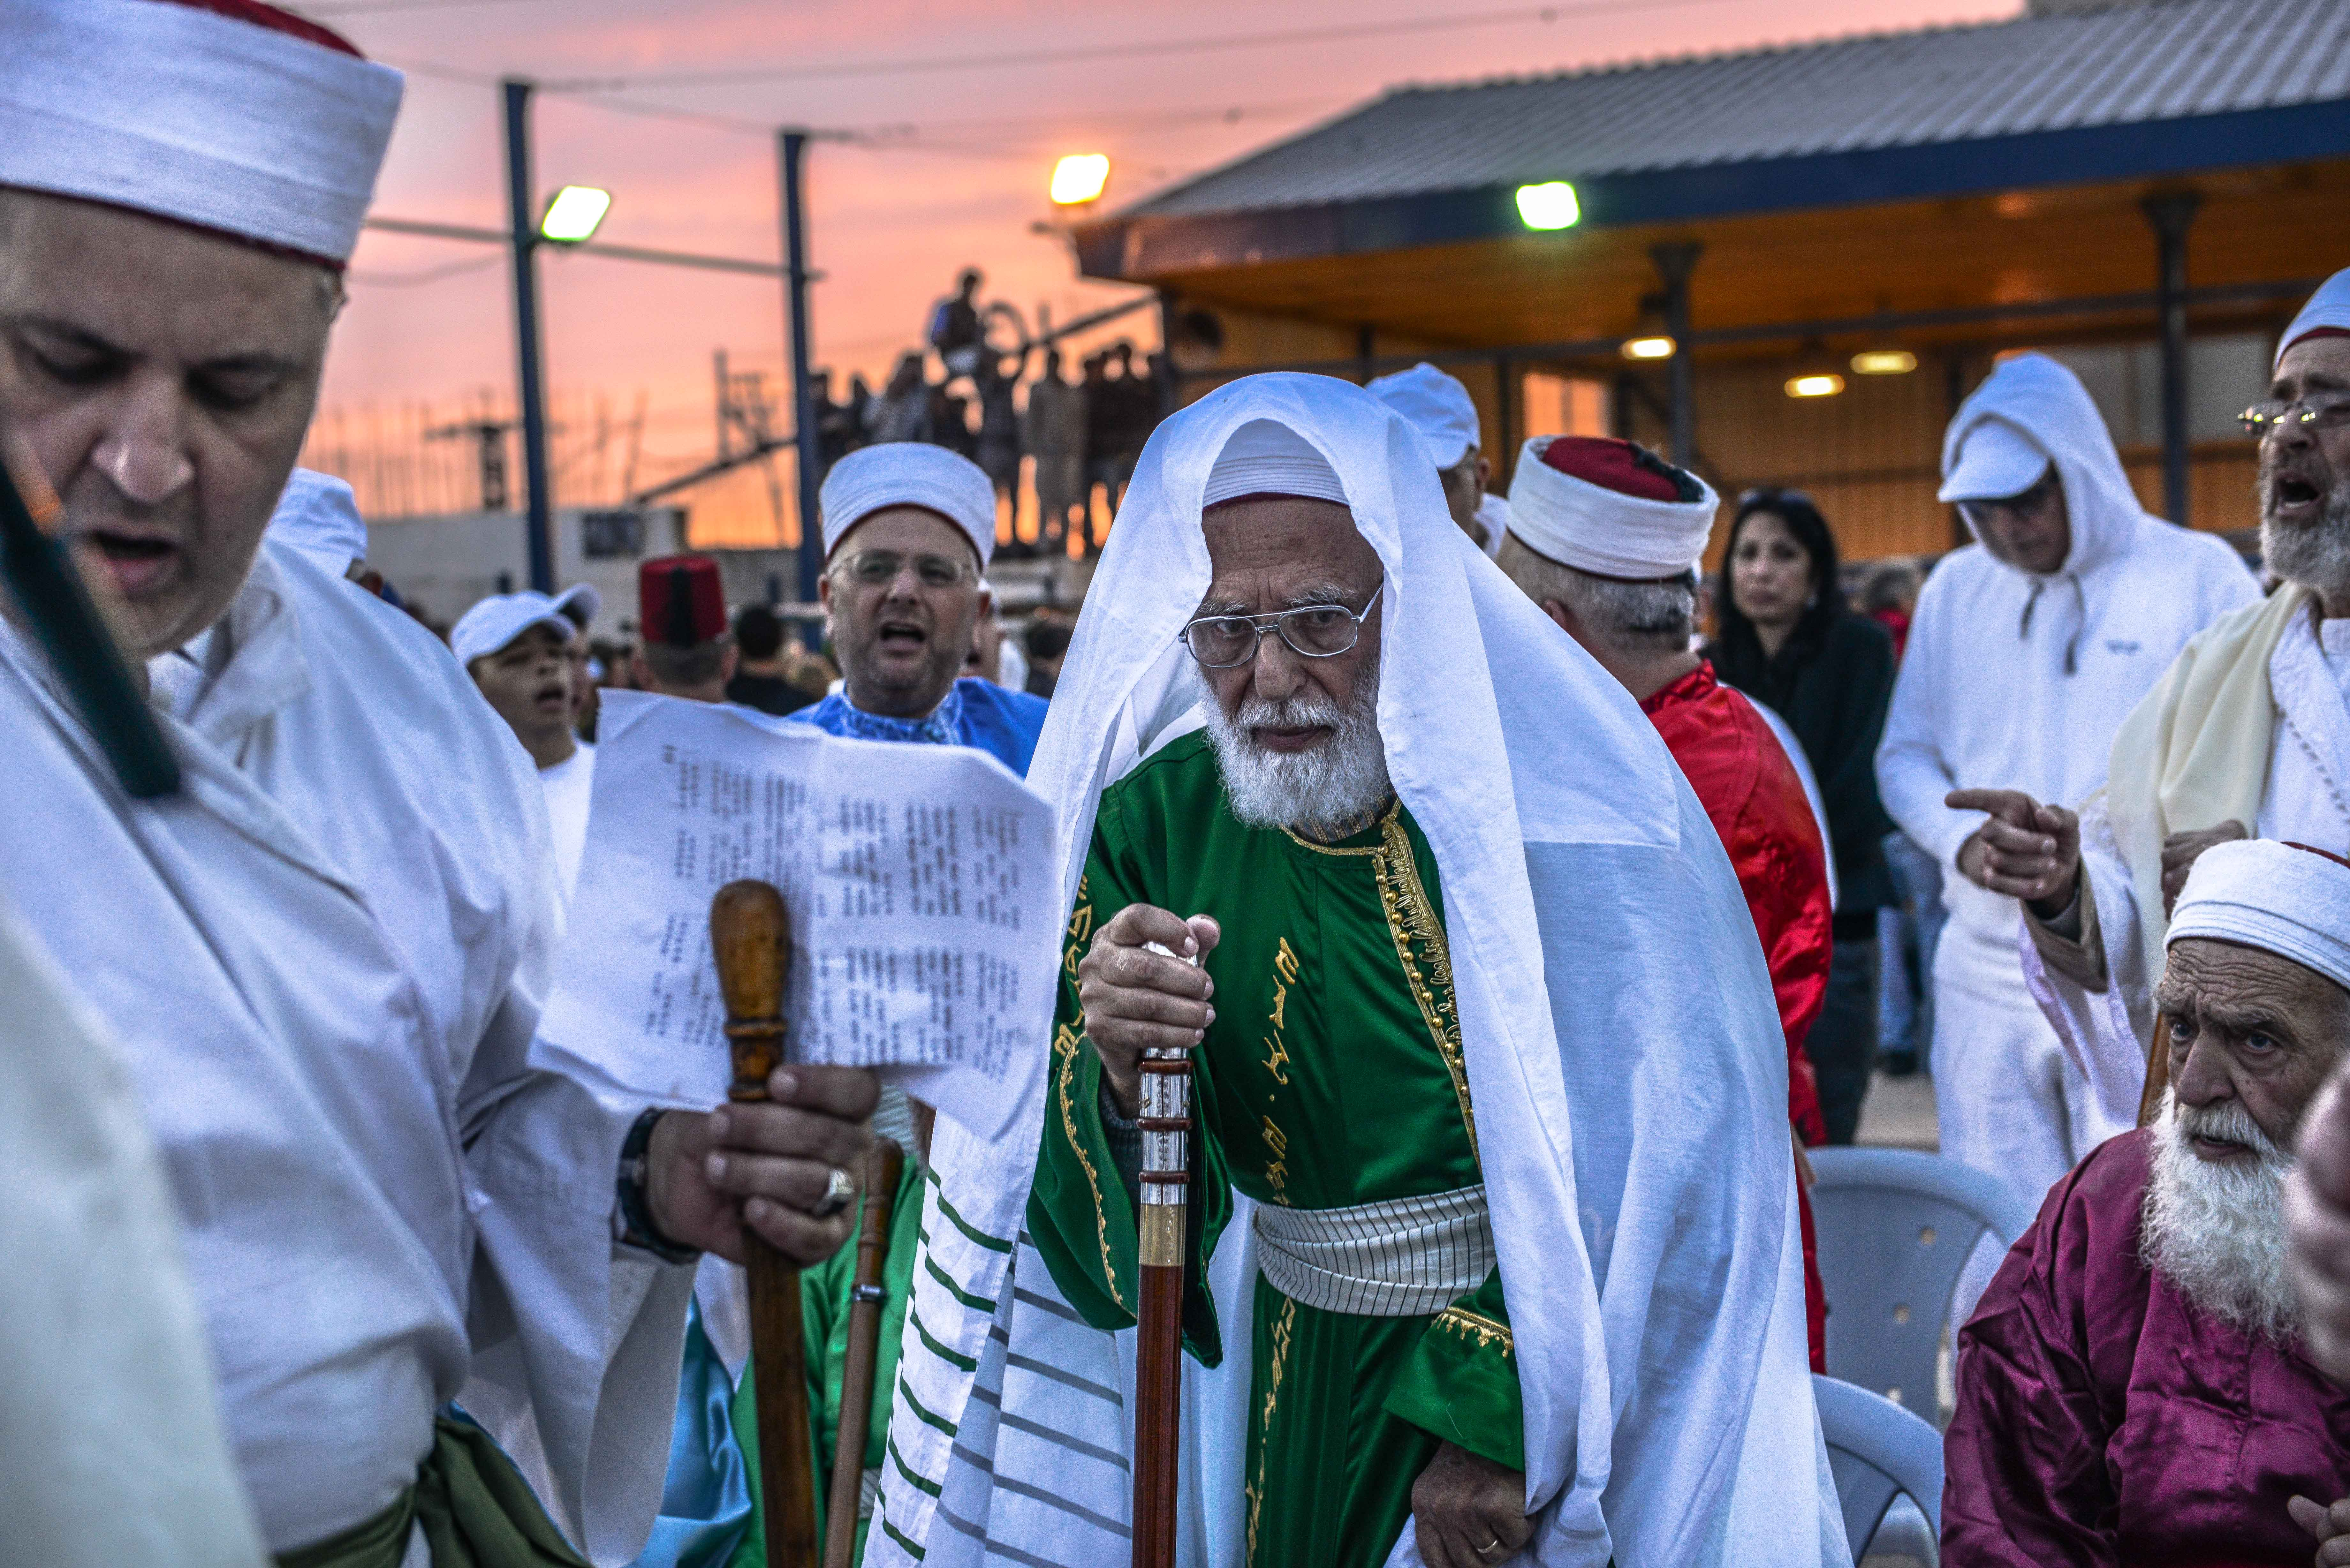 PHOTOS: Ancient Rituals in the Land of the Bible - The Tower